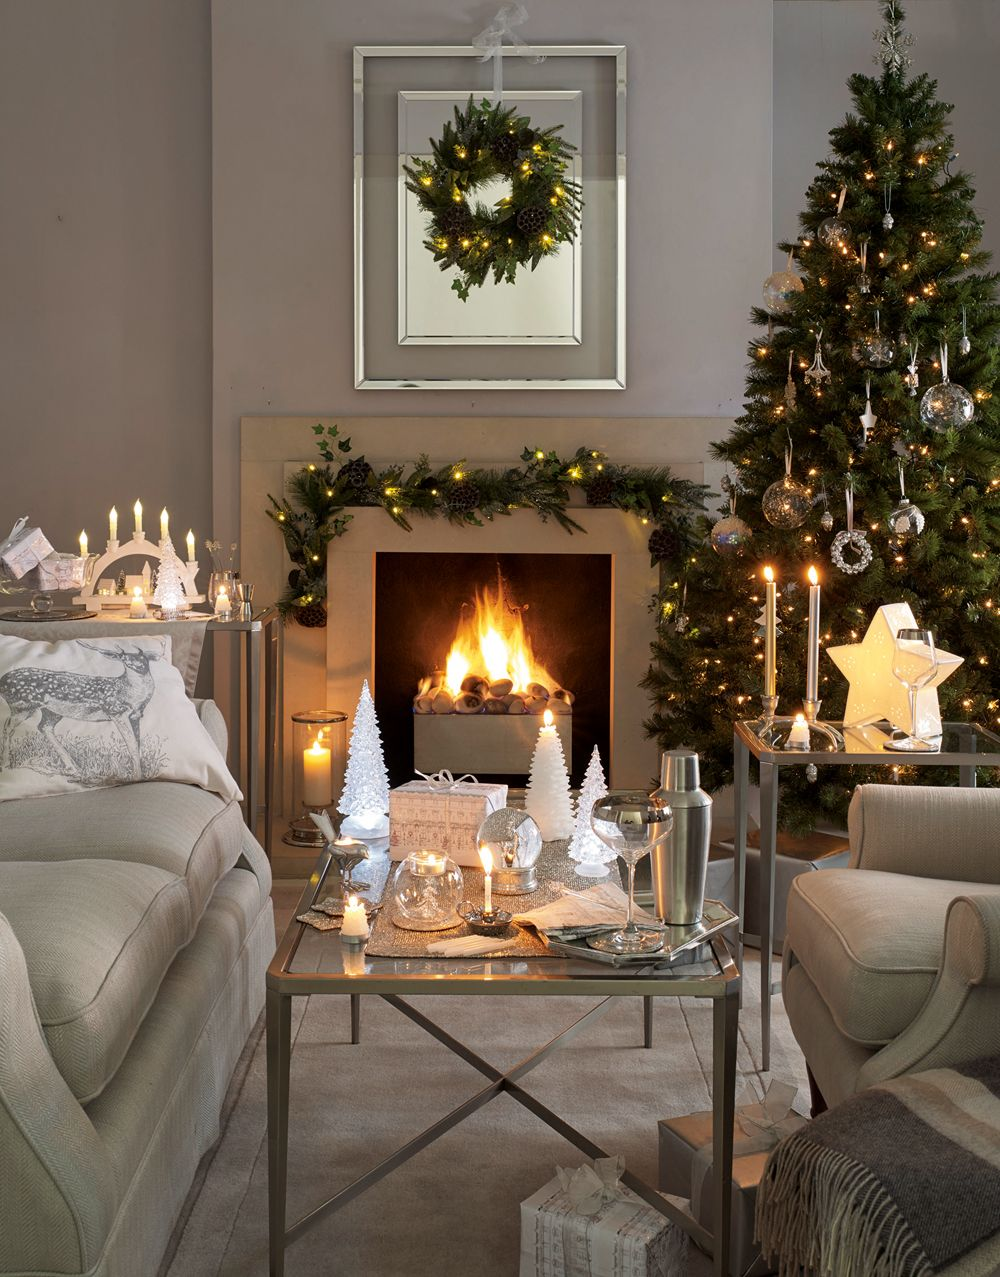 laura ashley christmas everything you could wish for the magic rh pinterest com